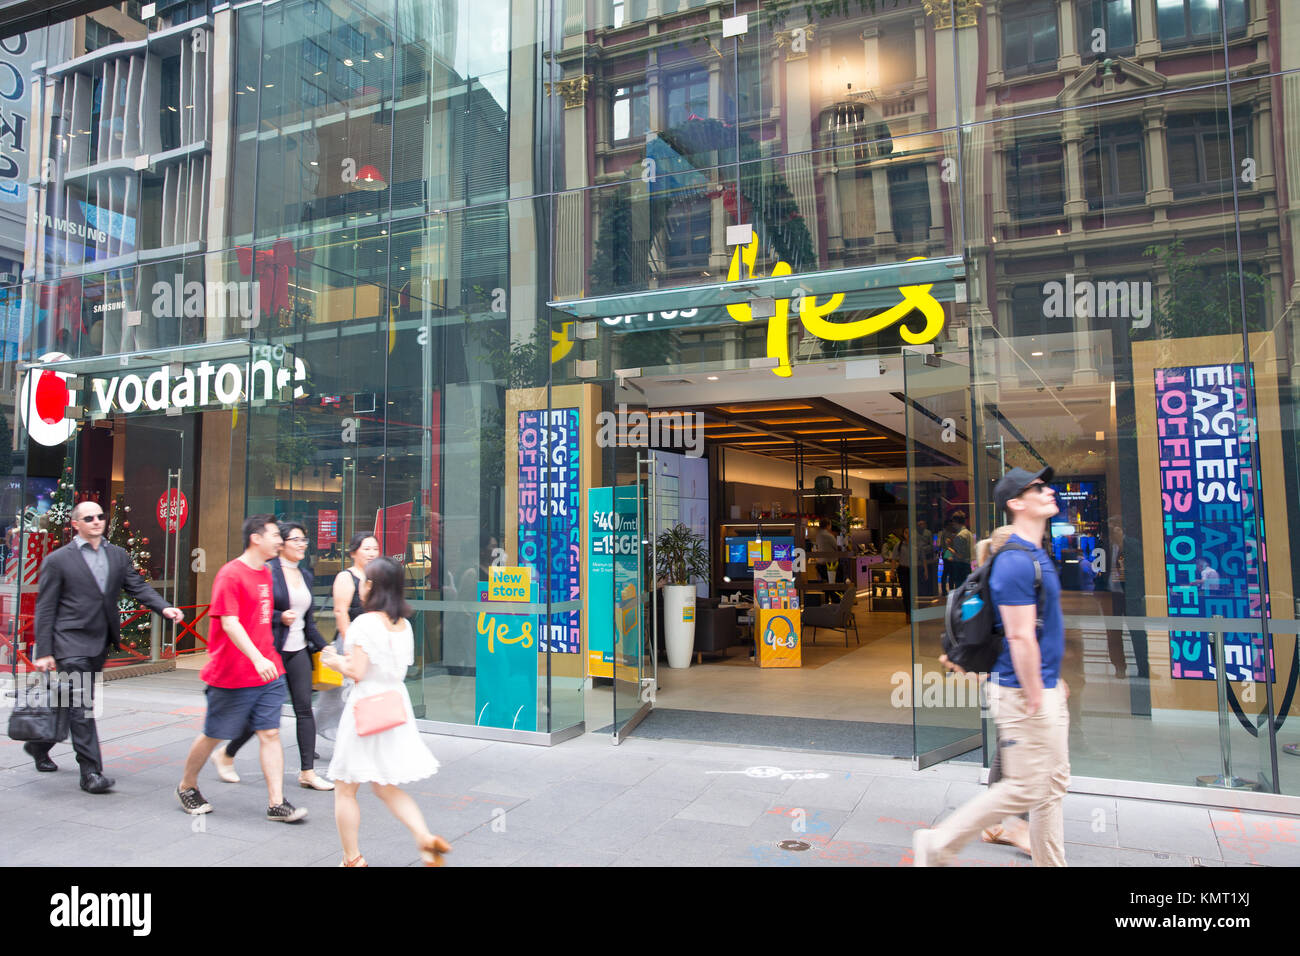 Vodafone and Optus telecommunications and electronics phones shops in George street,Sydney,Australia - Stock Image